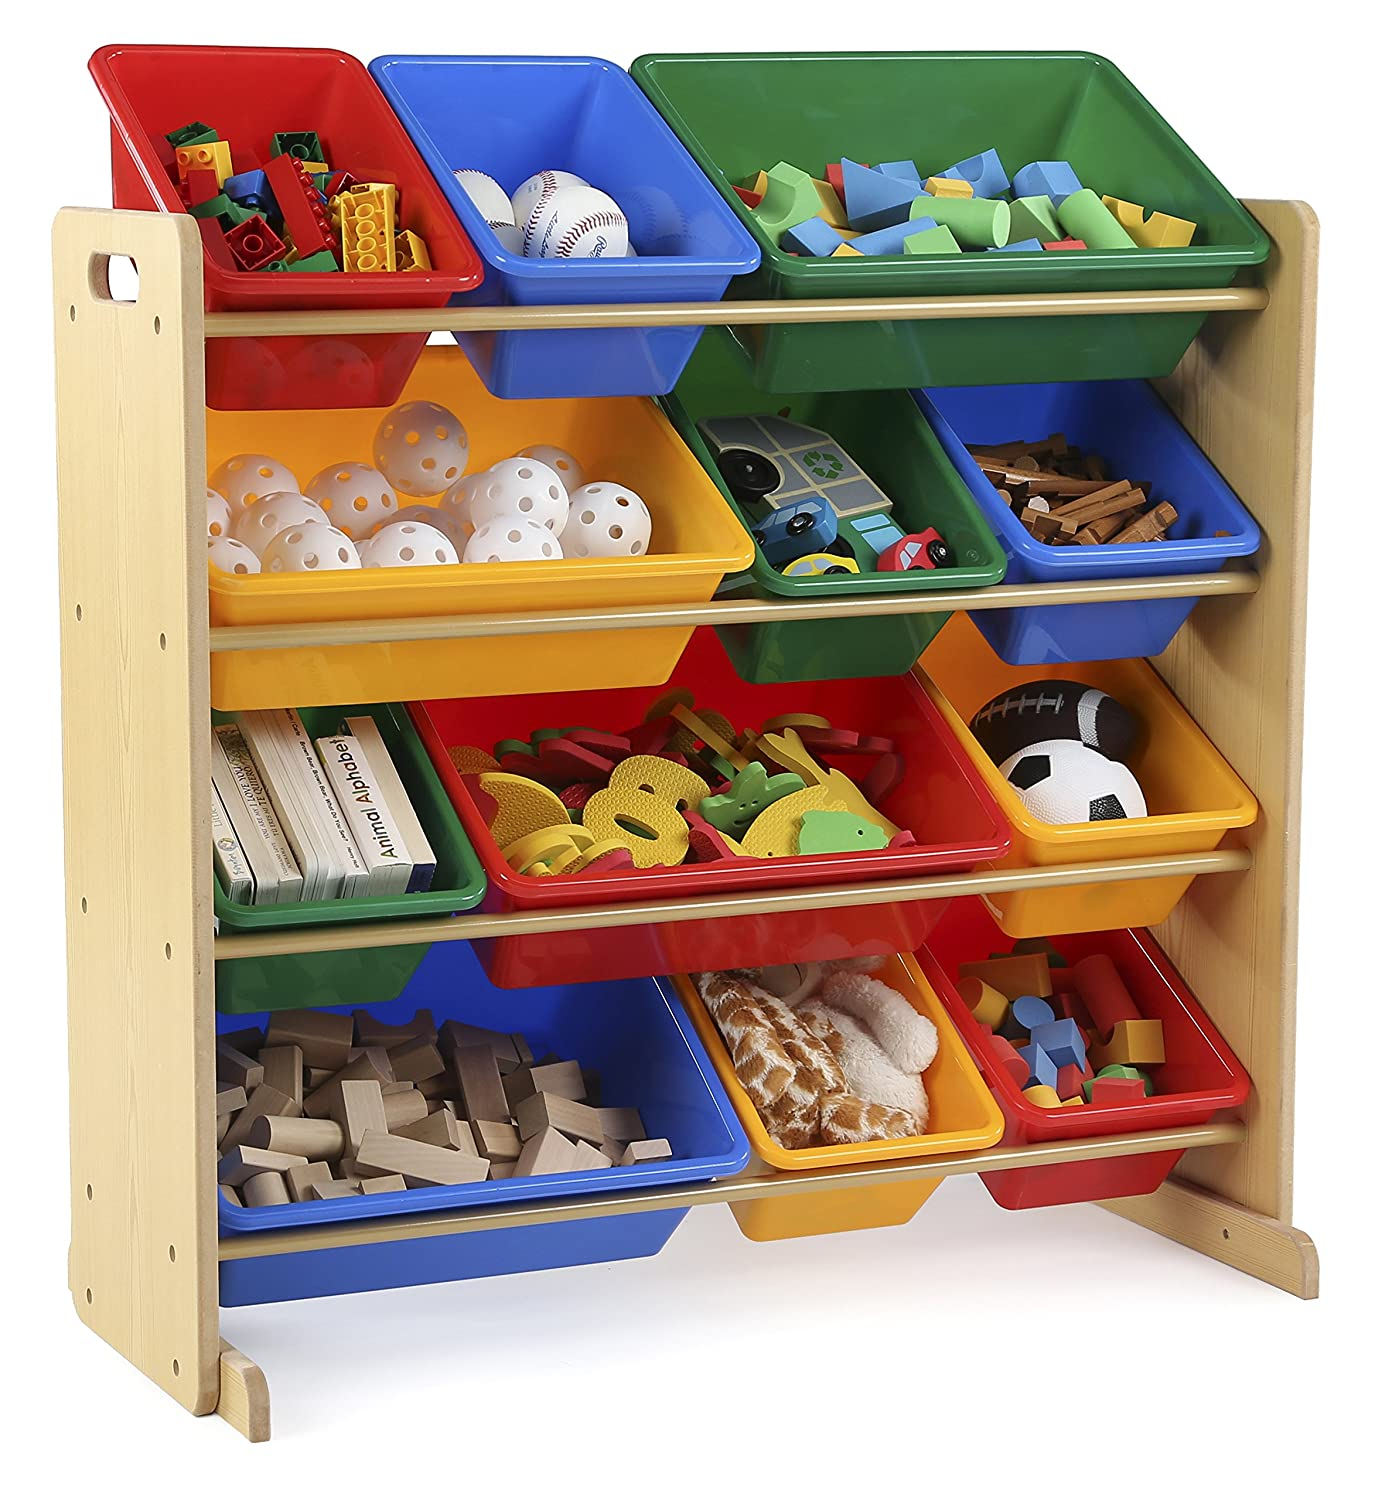 Toy Organization | How to Organize Toys | DIY Toy Organization | How to Organize your Kids' Toys | Toy Organizer | Get Organized